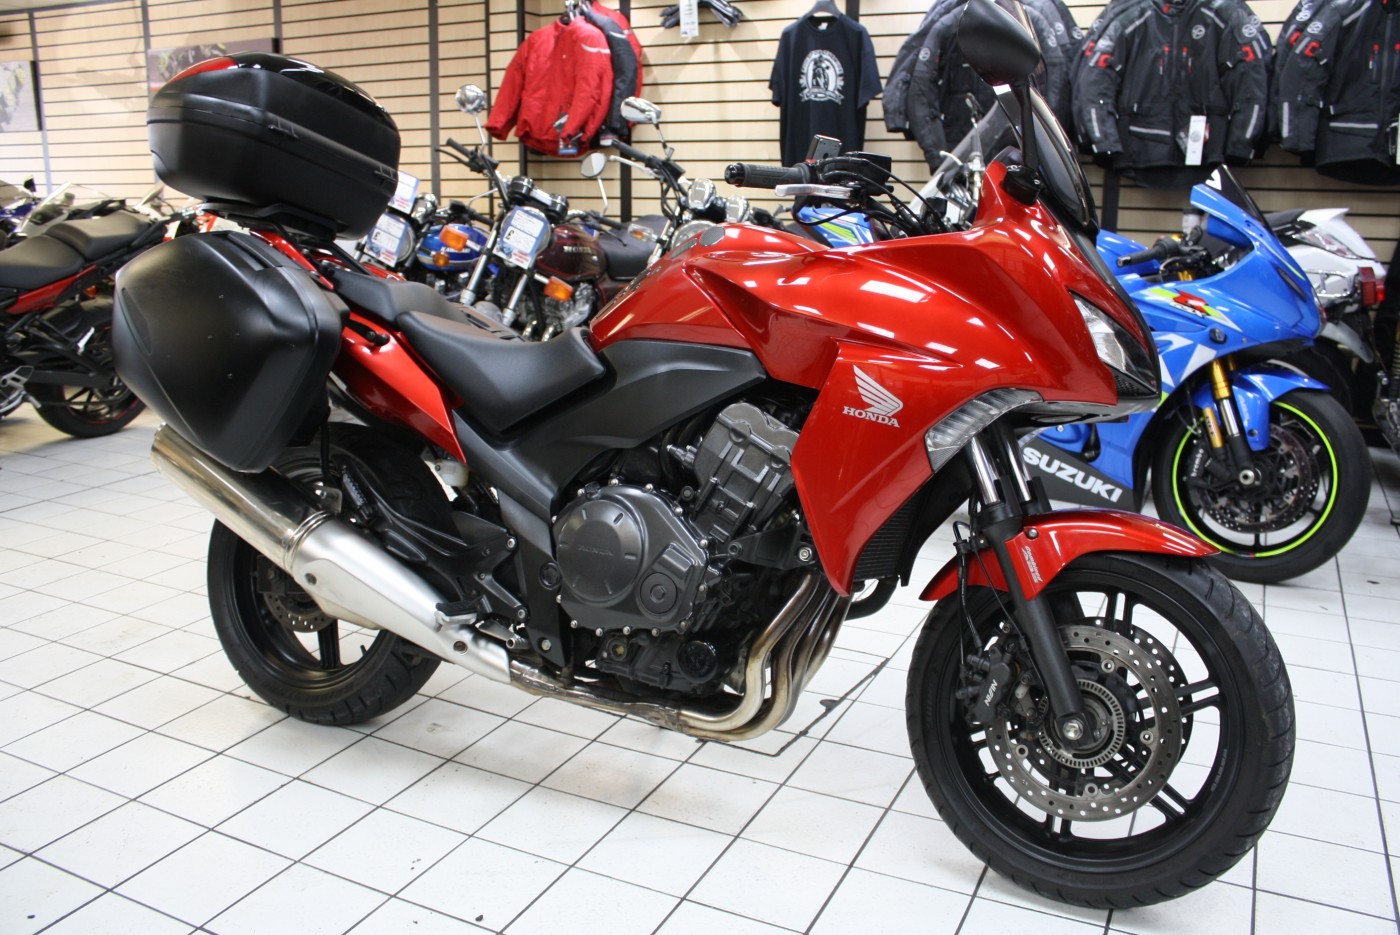 Honda CBF 1000 Full Luggage 2014